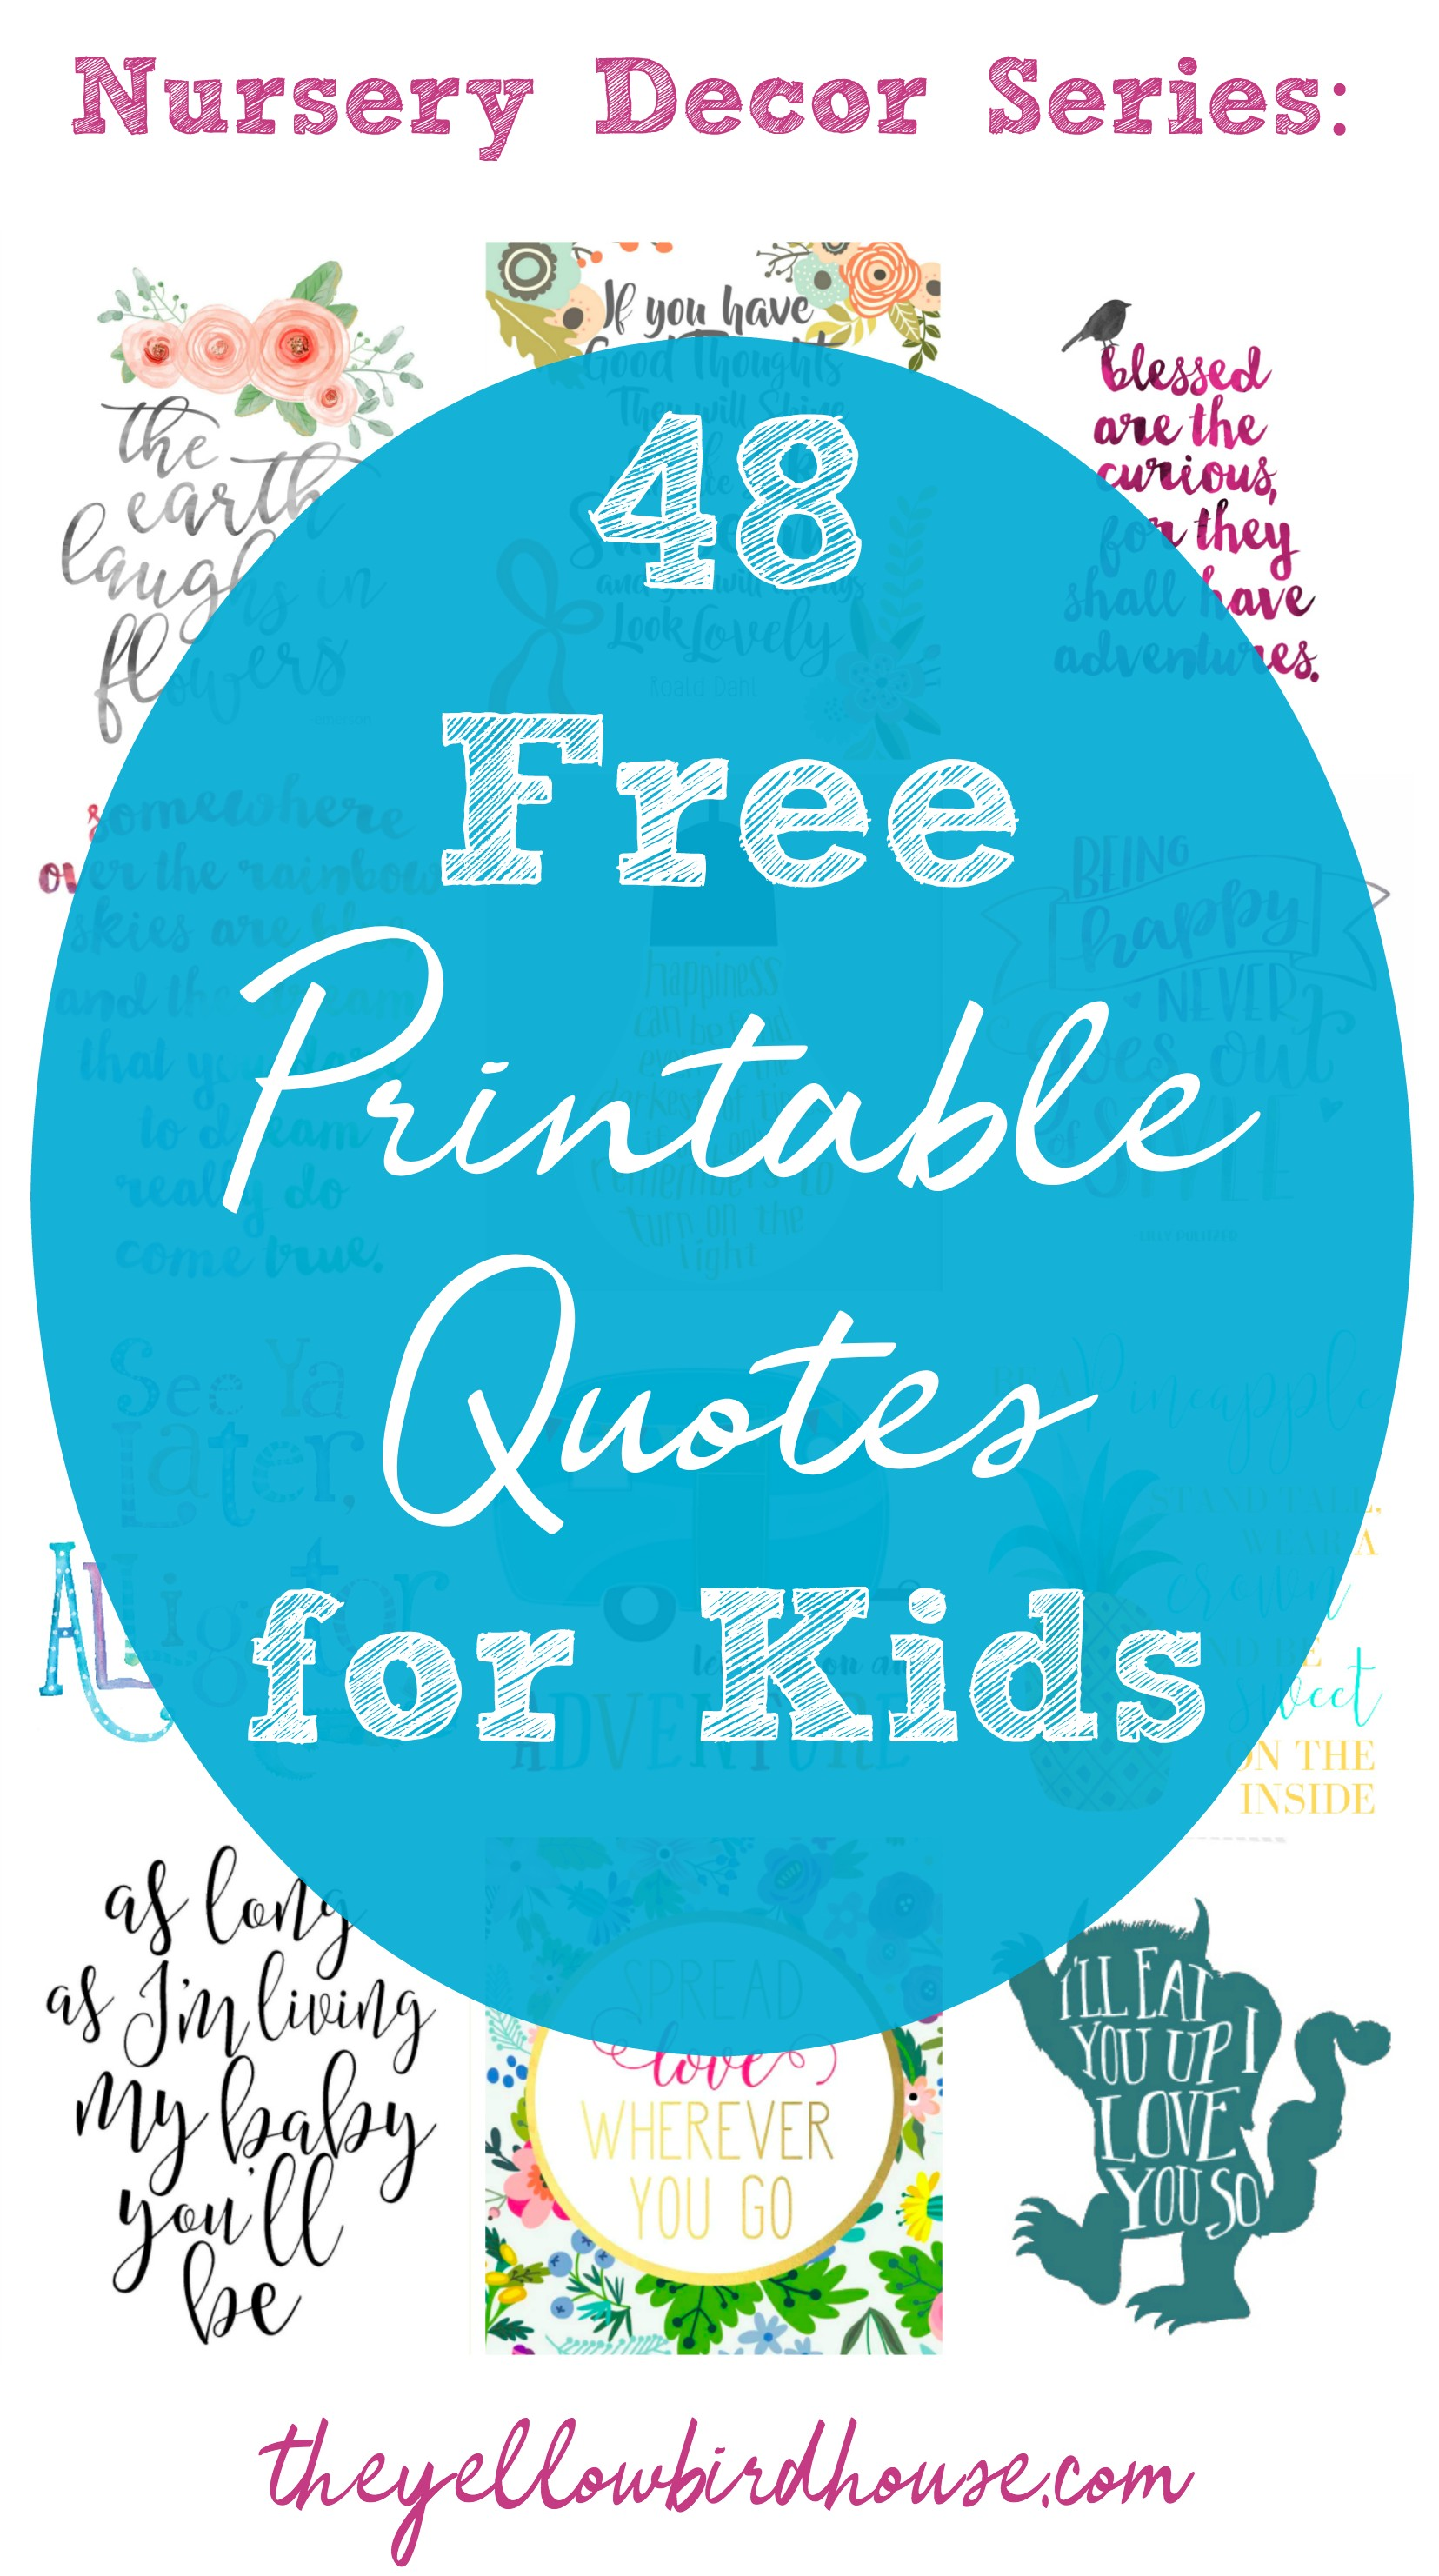 Free printable nursery art. Download one of these 48 totally free and kid-appropriate quotes! Words of encouragement and love to decorate your little one's room. Free nursery printables.